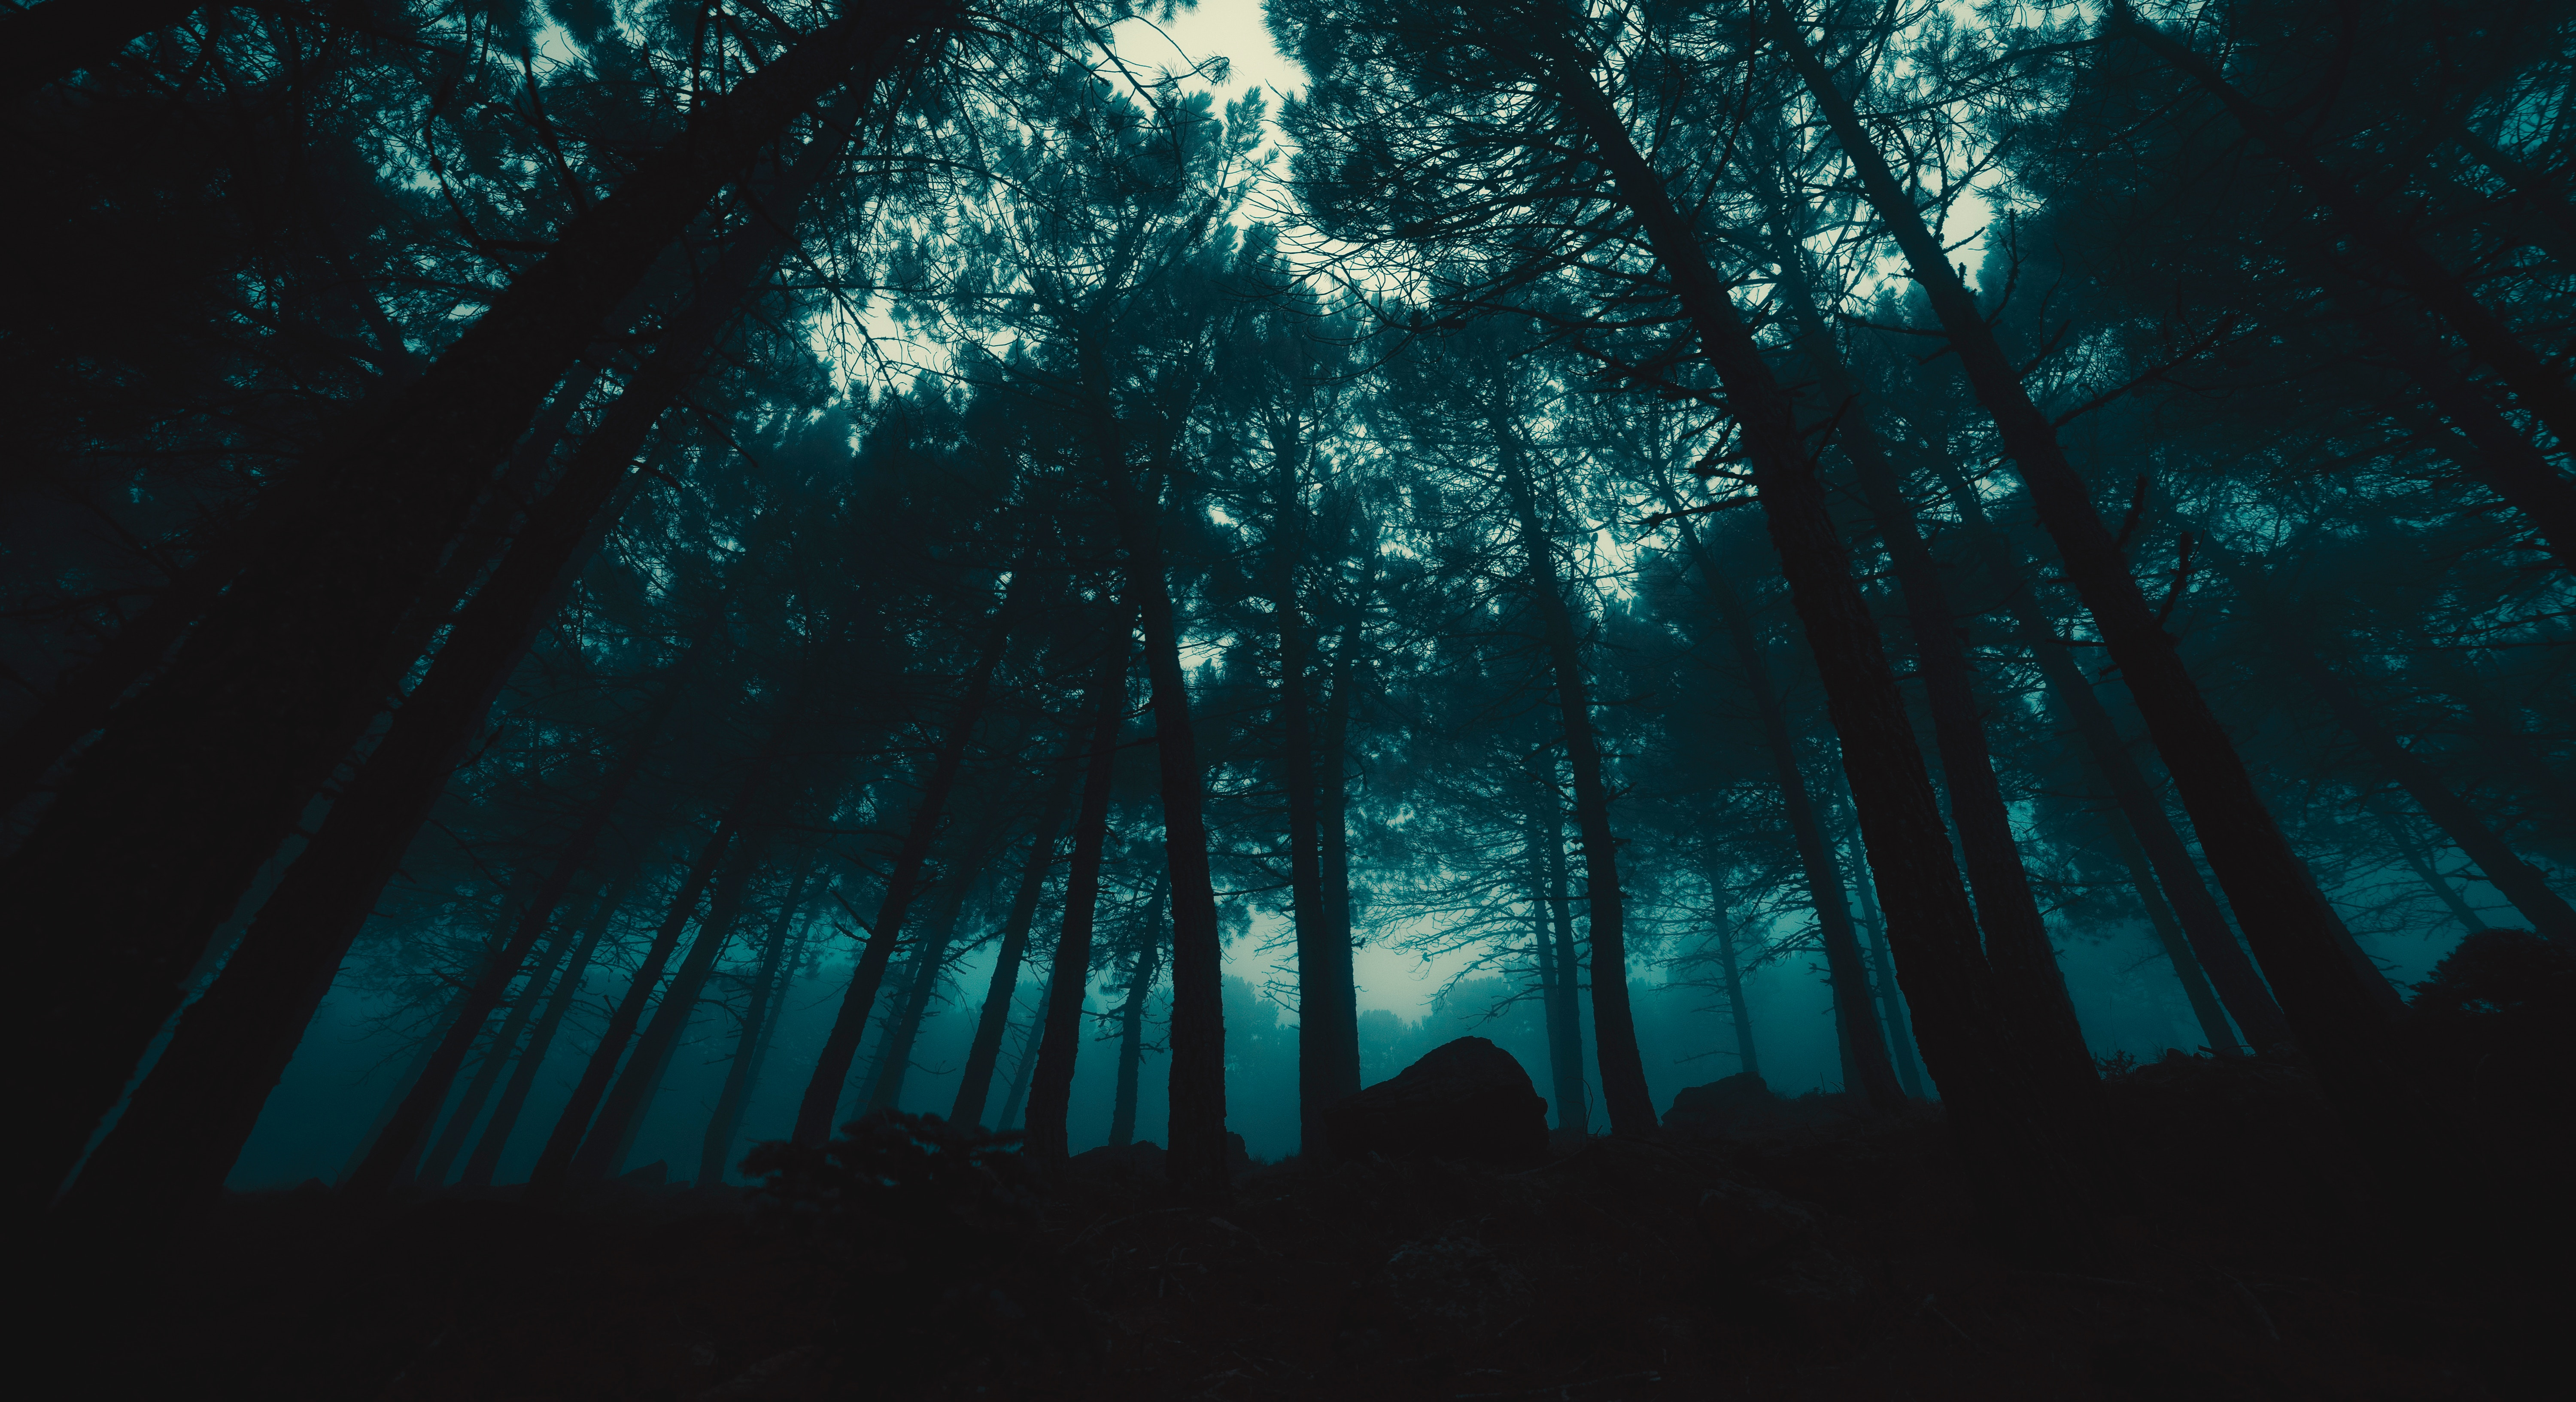 152058 free wallpaper 480x800 for phone, download images Trees, Dark, Forest, Fog, Evening 480x800 for mobile